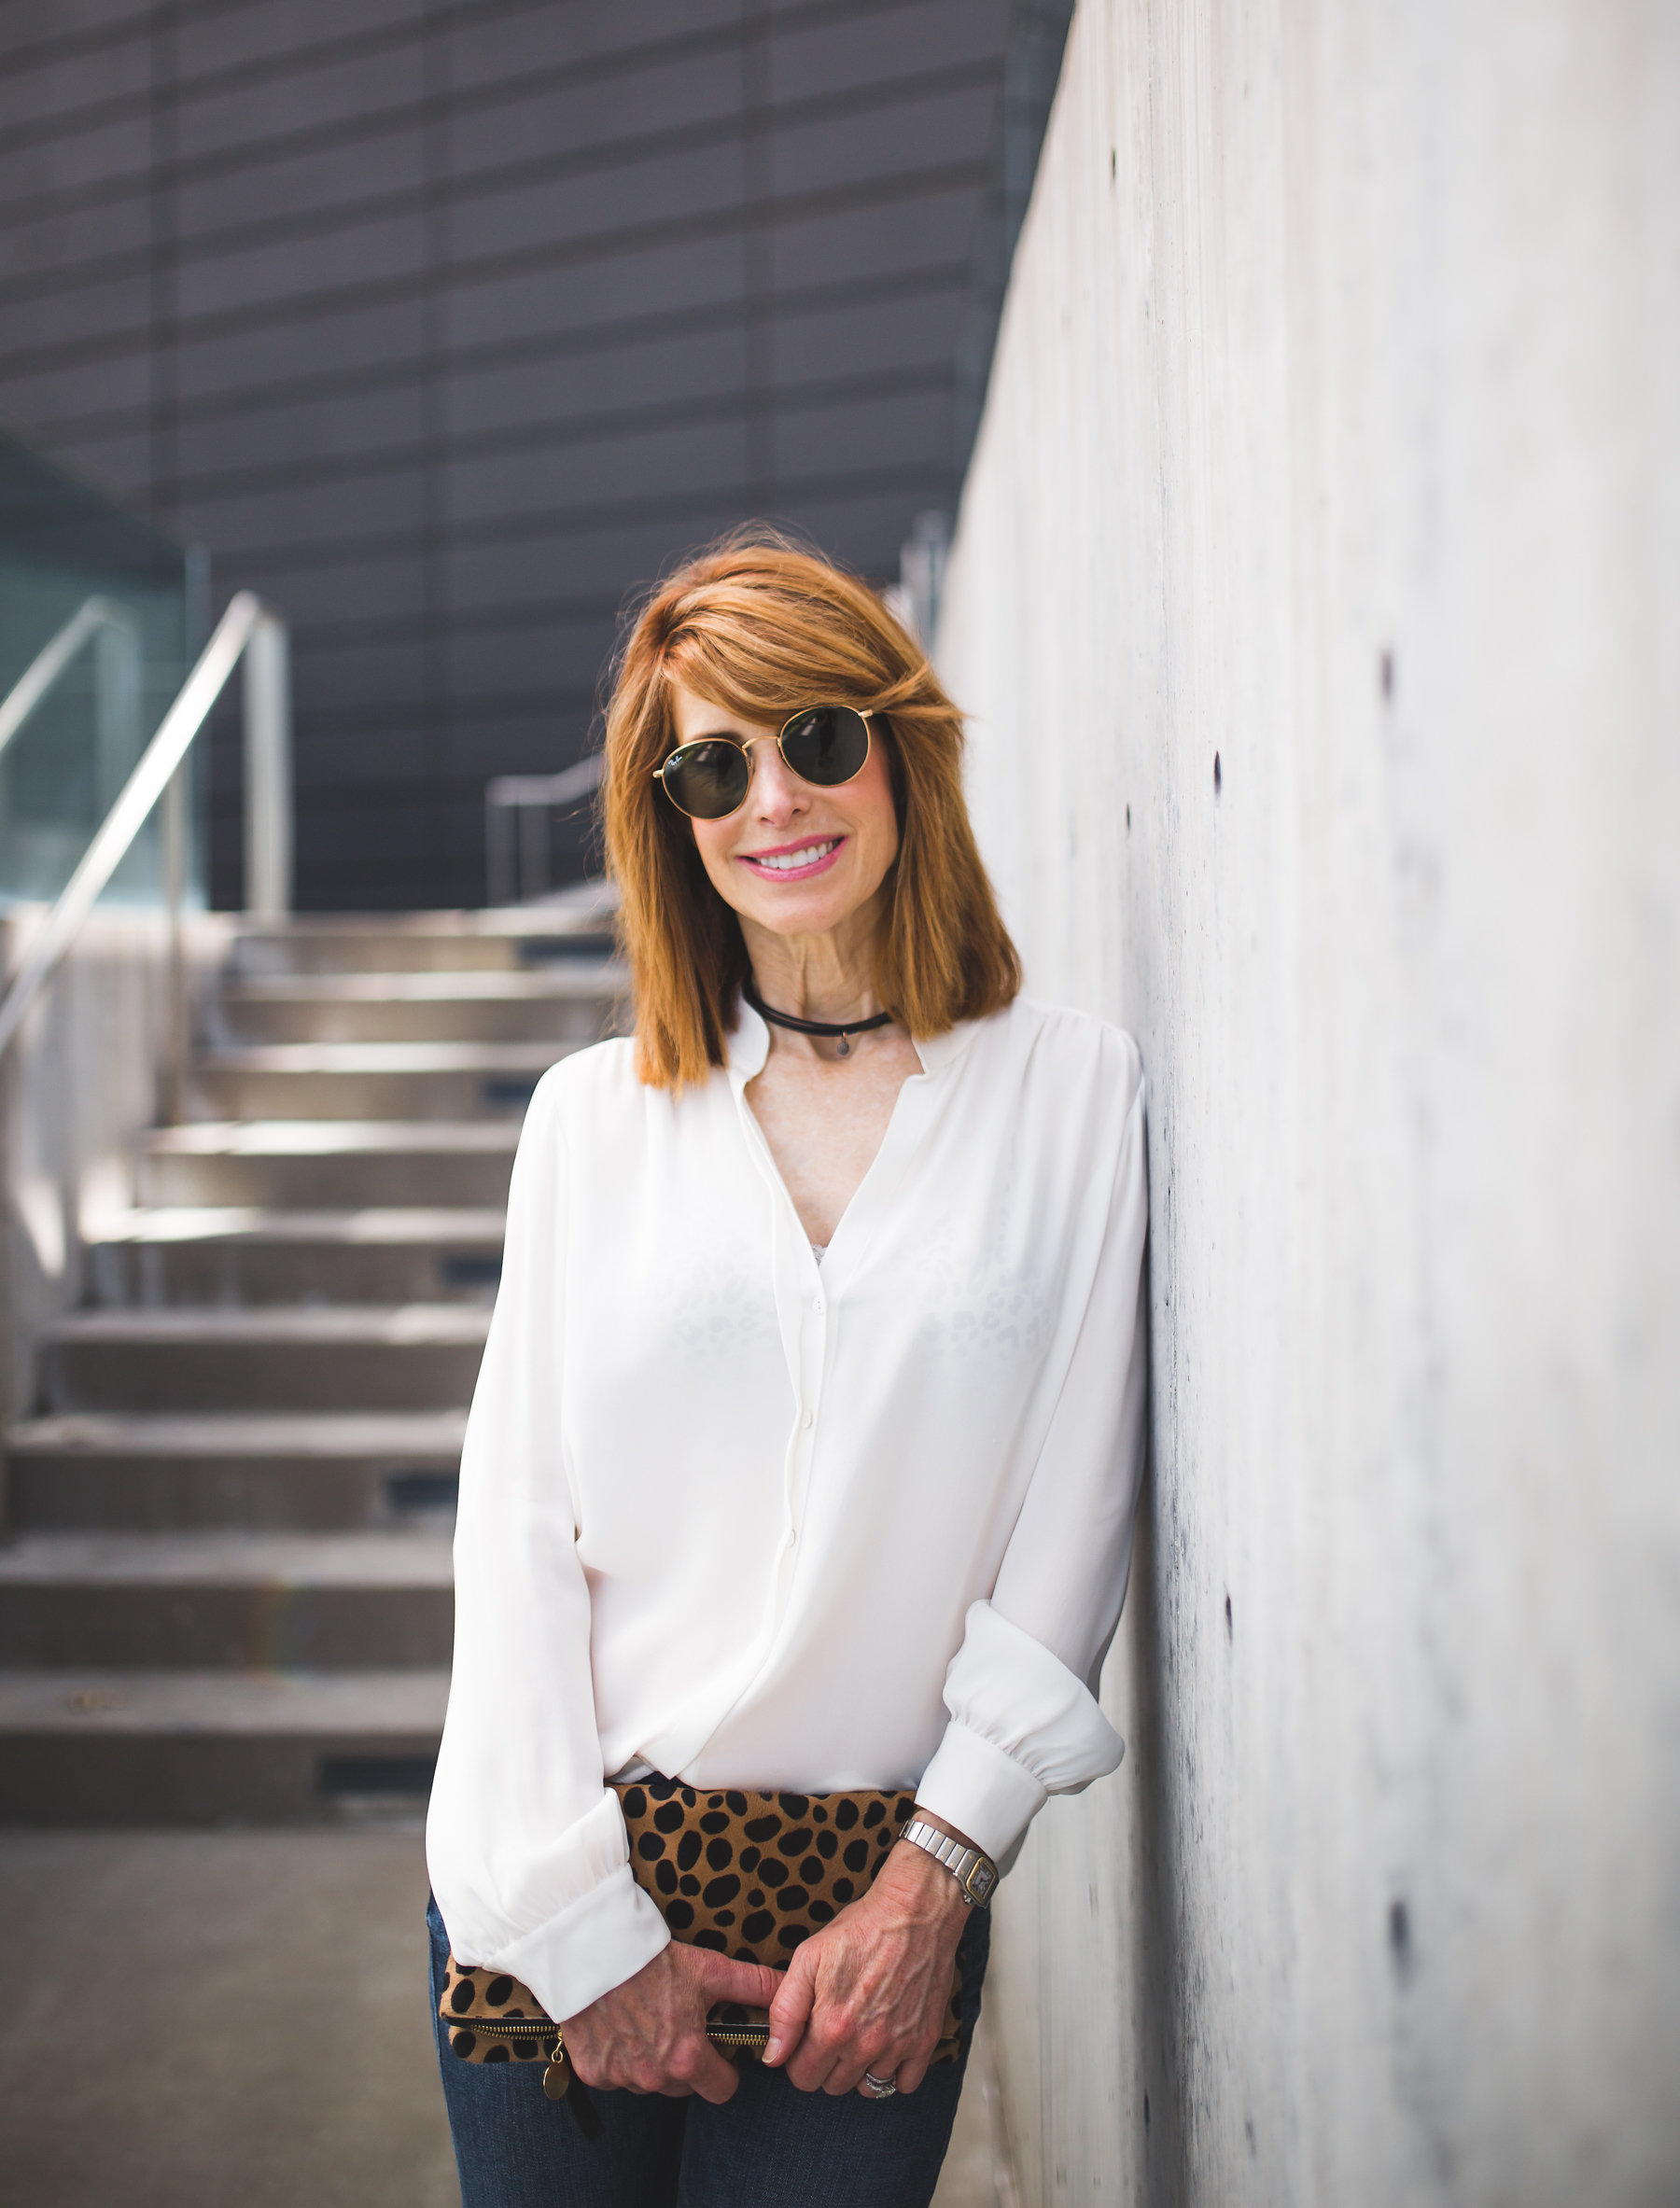 DALLAS BLOGGER, DALLAS FASHON BLOGGER, OVER 50 FASHION BLOGGER